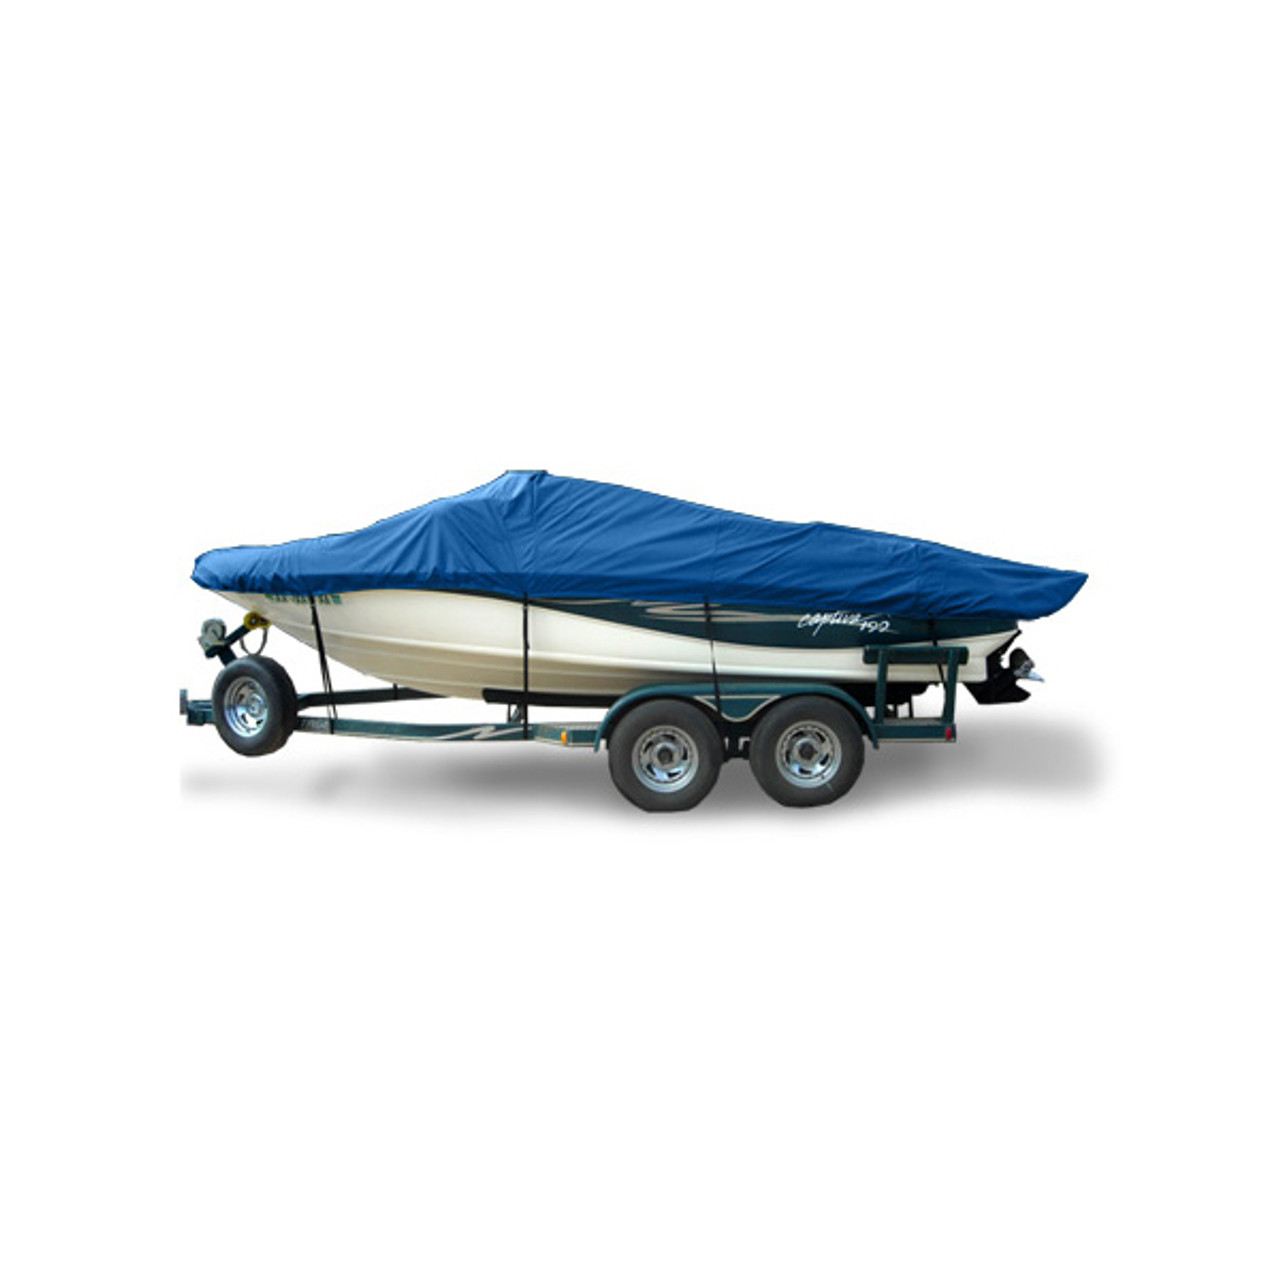 Parts & Accessories GREY BOAT COVER FITS Bayliner 212 Sport Cuddy ...